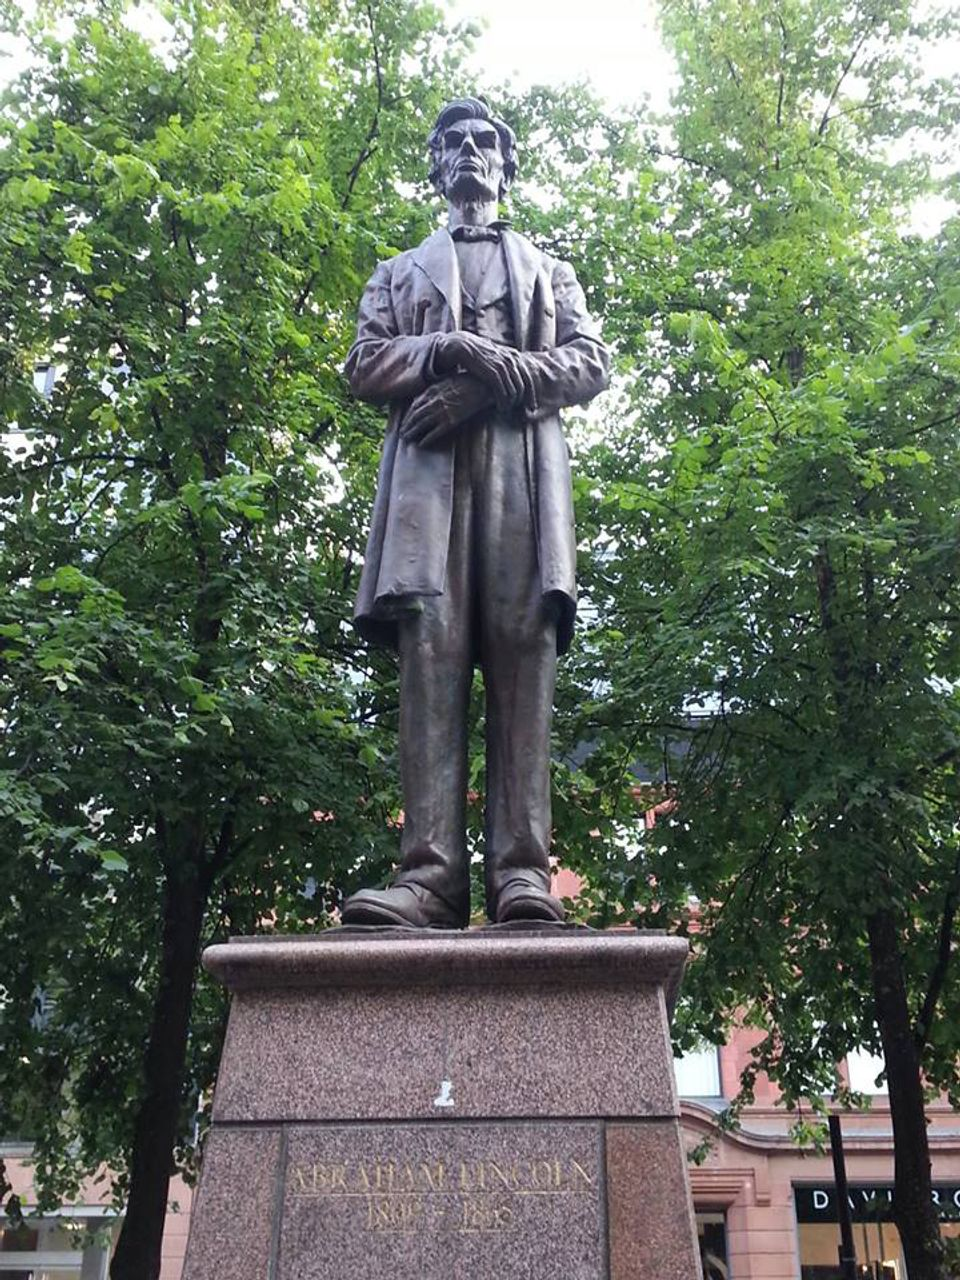 The statue of Abraham Lincoln in Lincoln Square, Manchester